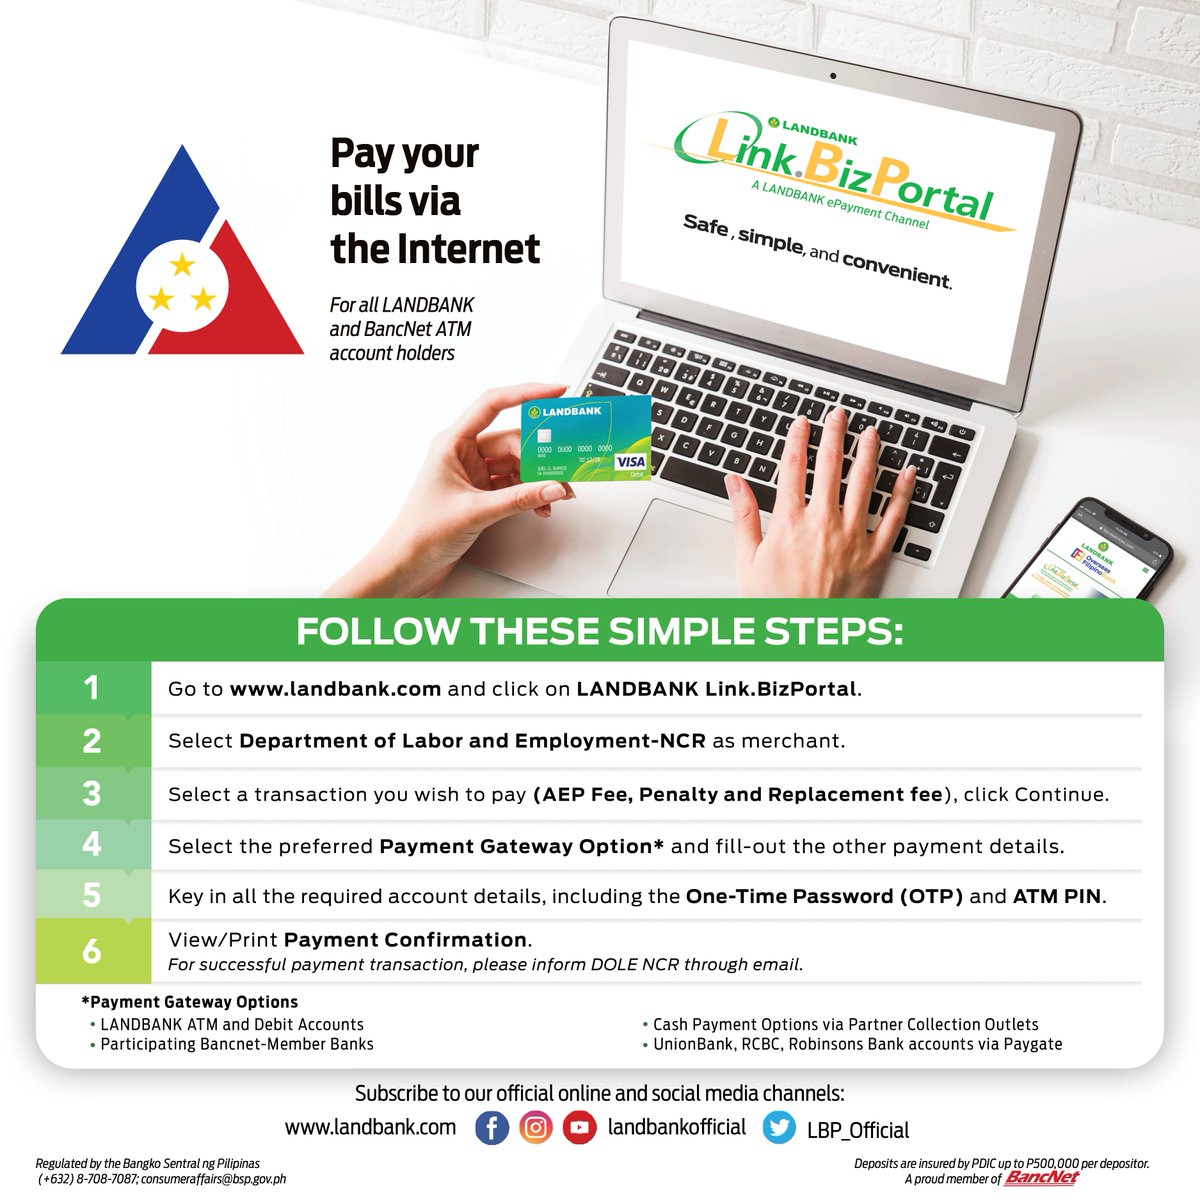 Enjoy a safer way to pay your bills online with the LANDBANK LinkBiz.Portal! Settle your fees and online clearances to the Department of Labor and Employment (DOLE) by visiting https://t.co/LVLdrKmzQn and following these six easy steps.  #BankingOnTheFIlipinoSpirit https://t.co/EoKLeaWnjb